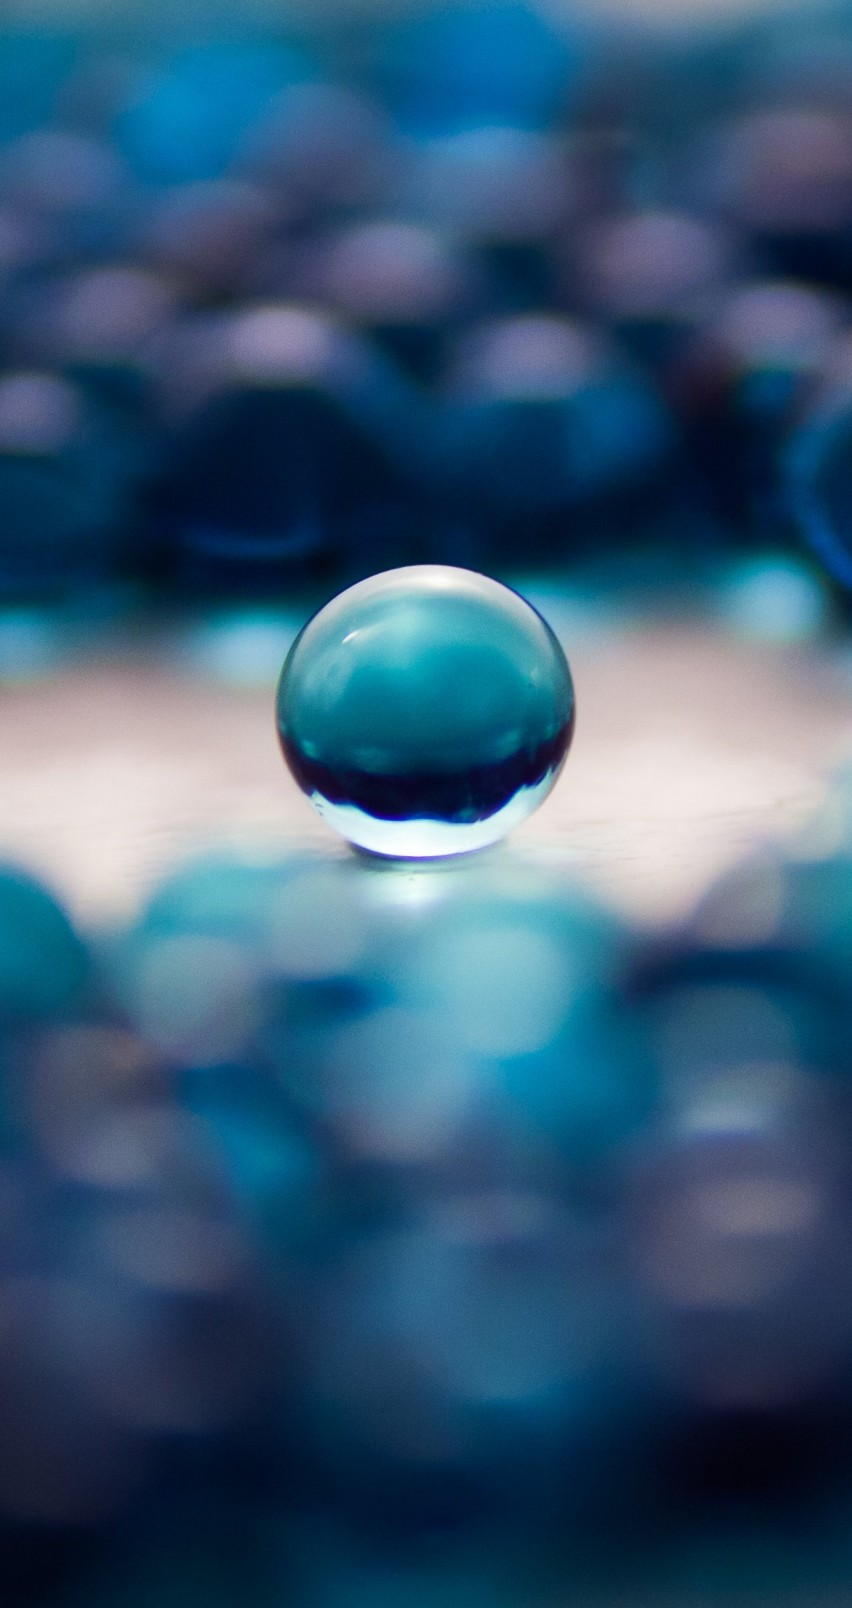 Water Balls Wallpaper for Apple iPhone 6 / 6s